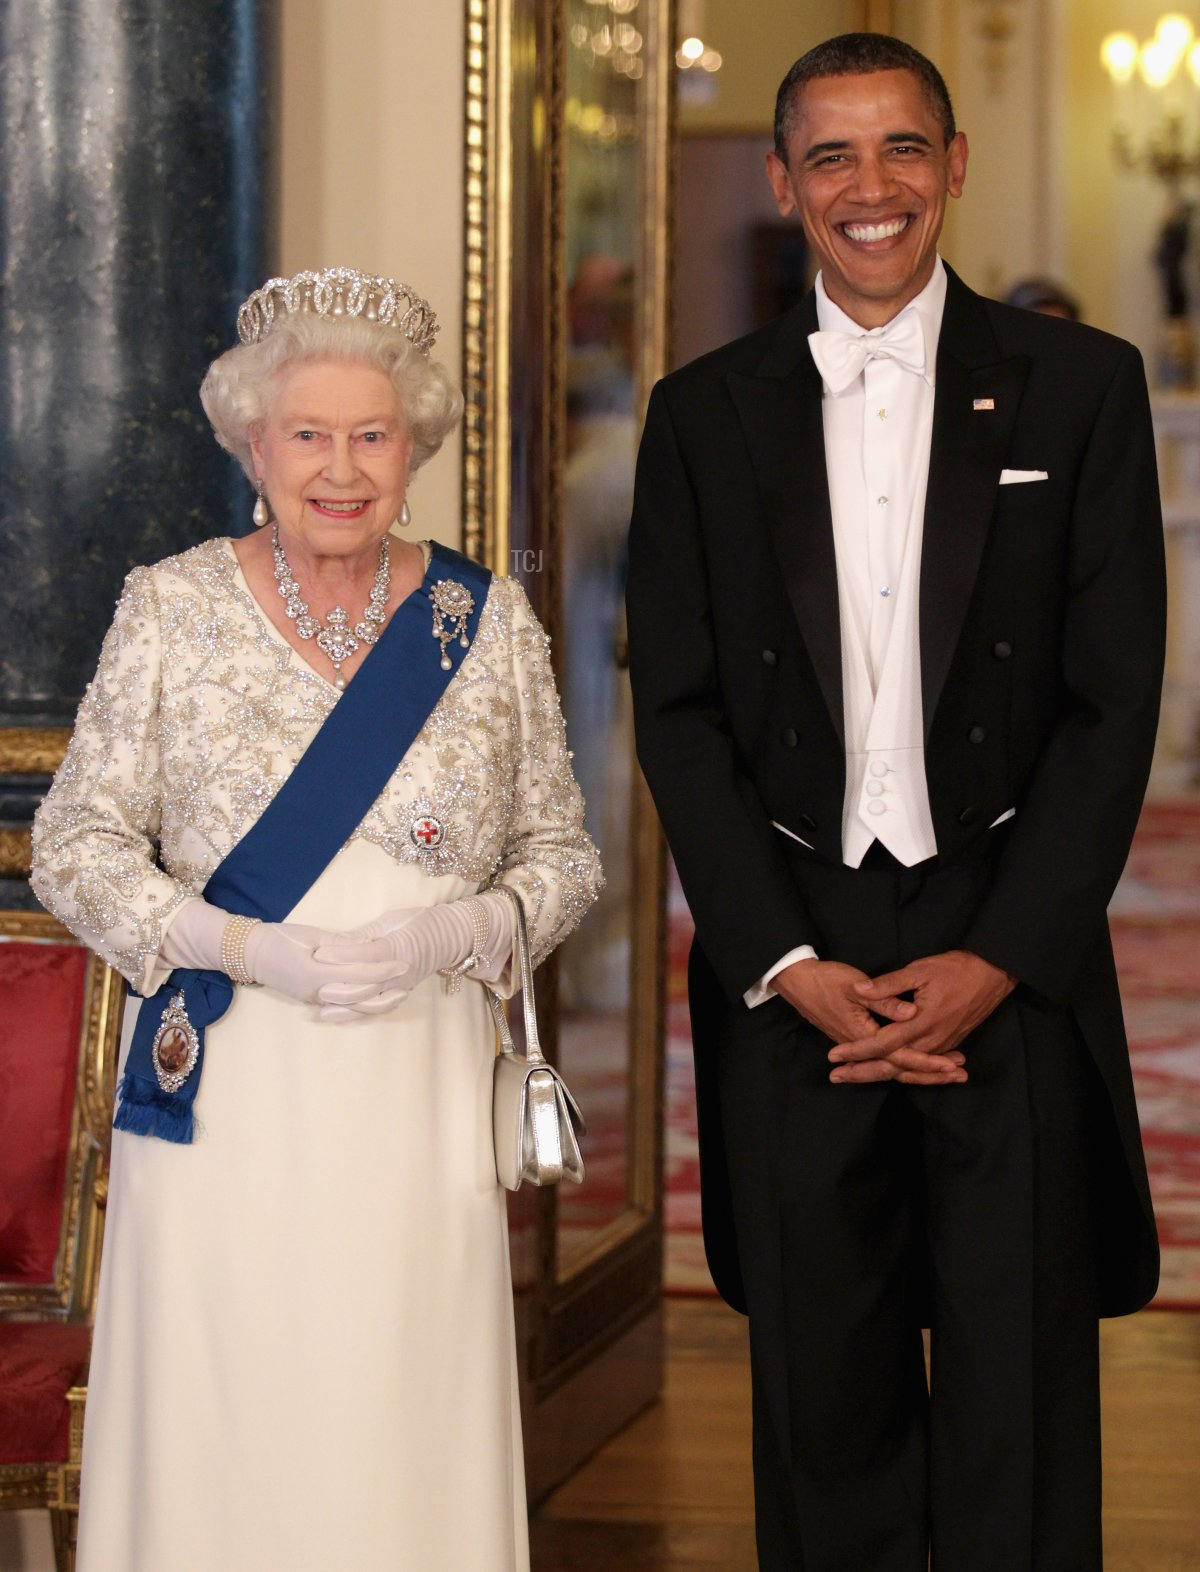 Queen Elizabeth II and U.S. President Barack Obama (R) pose in the Music Room of Buckingham Palace ahead of a State Banquet on May 24, 2011 in London, England